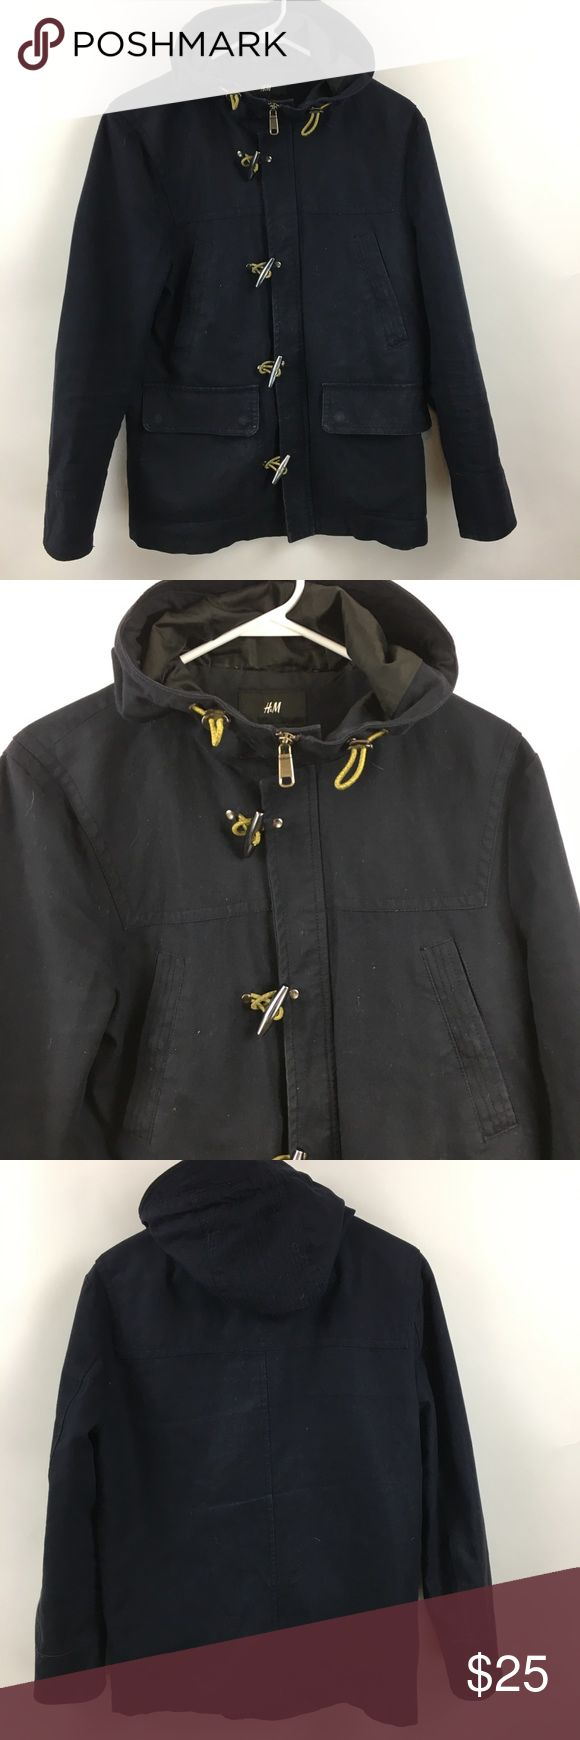 "H&M navy blue canvas jacket men's 36R In very good preowned condition from a smoke free home size 36R.  Armpit to armpit- 20"" Length from shoulder- 27"" Sleeve from armpit- 17"" H&M Jackets & Coats Military & Field"